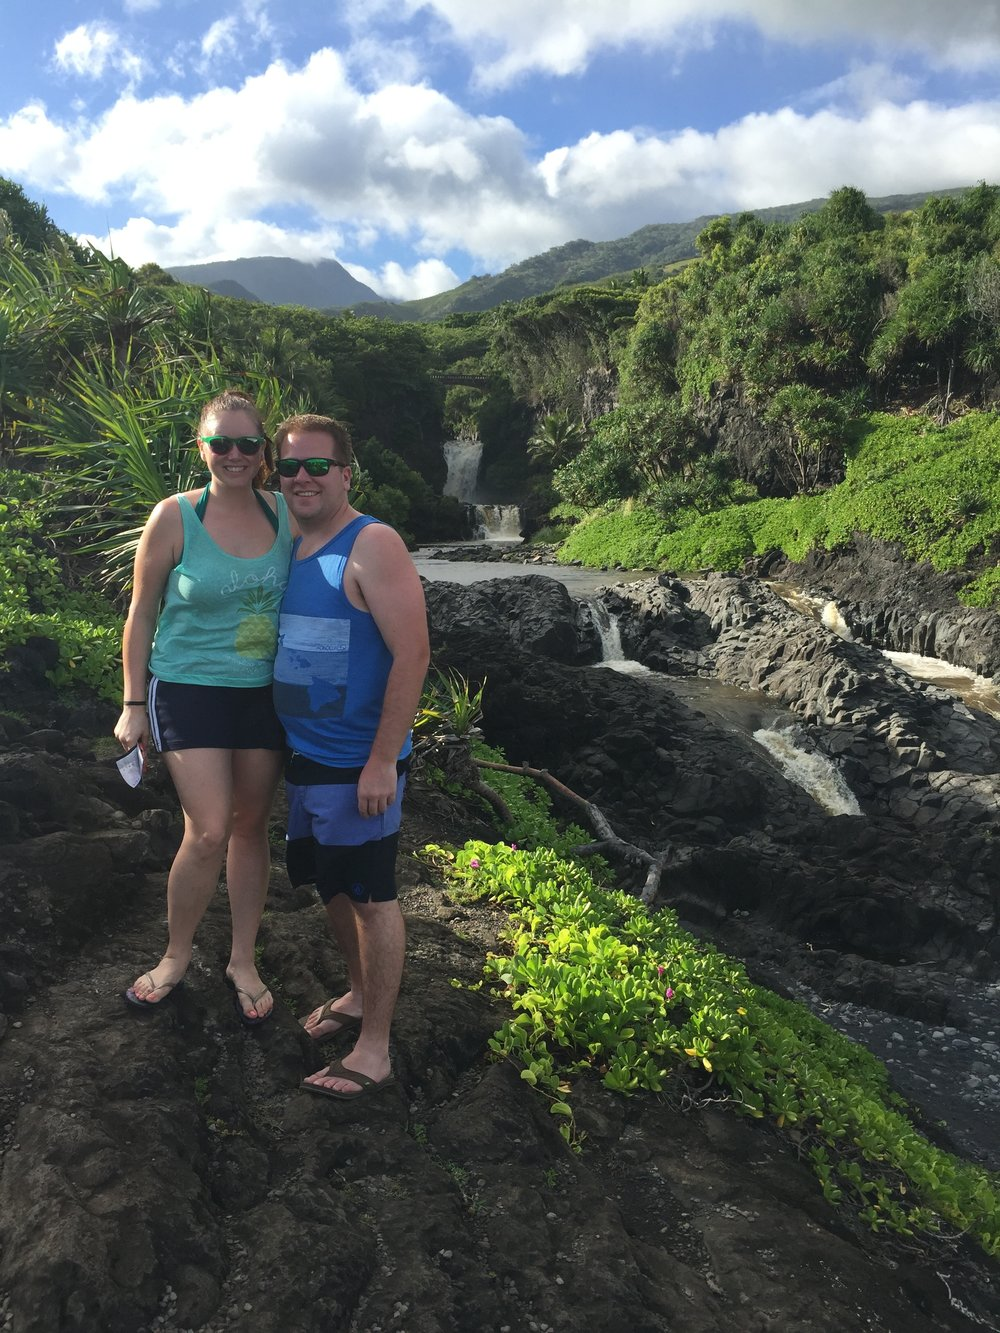 'Ohe'o Gulch (Seven Sacred Pools) - in Haleakala National Park